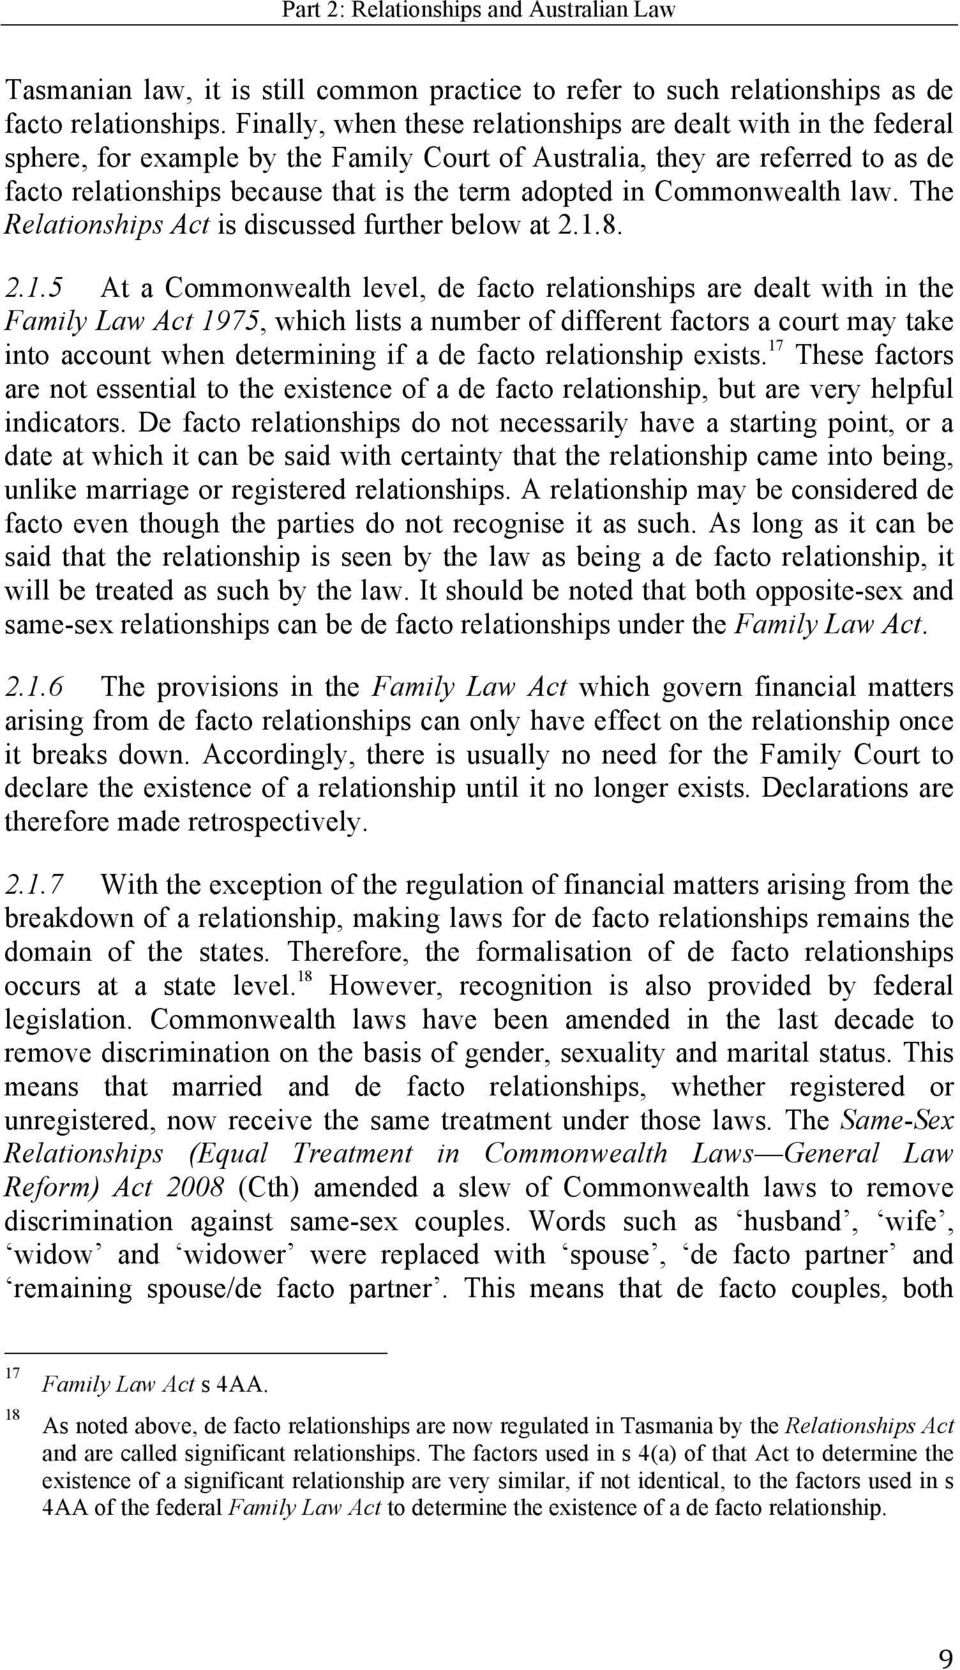 in Commonwealth law. The Relationships Act is discussed further below at 2.1.